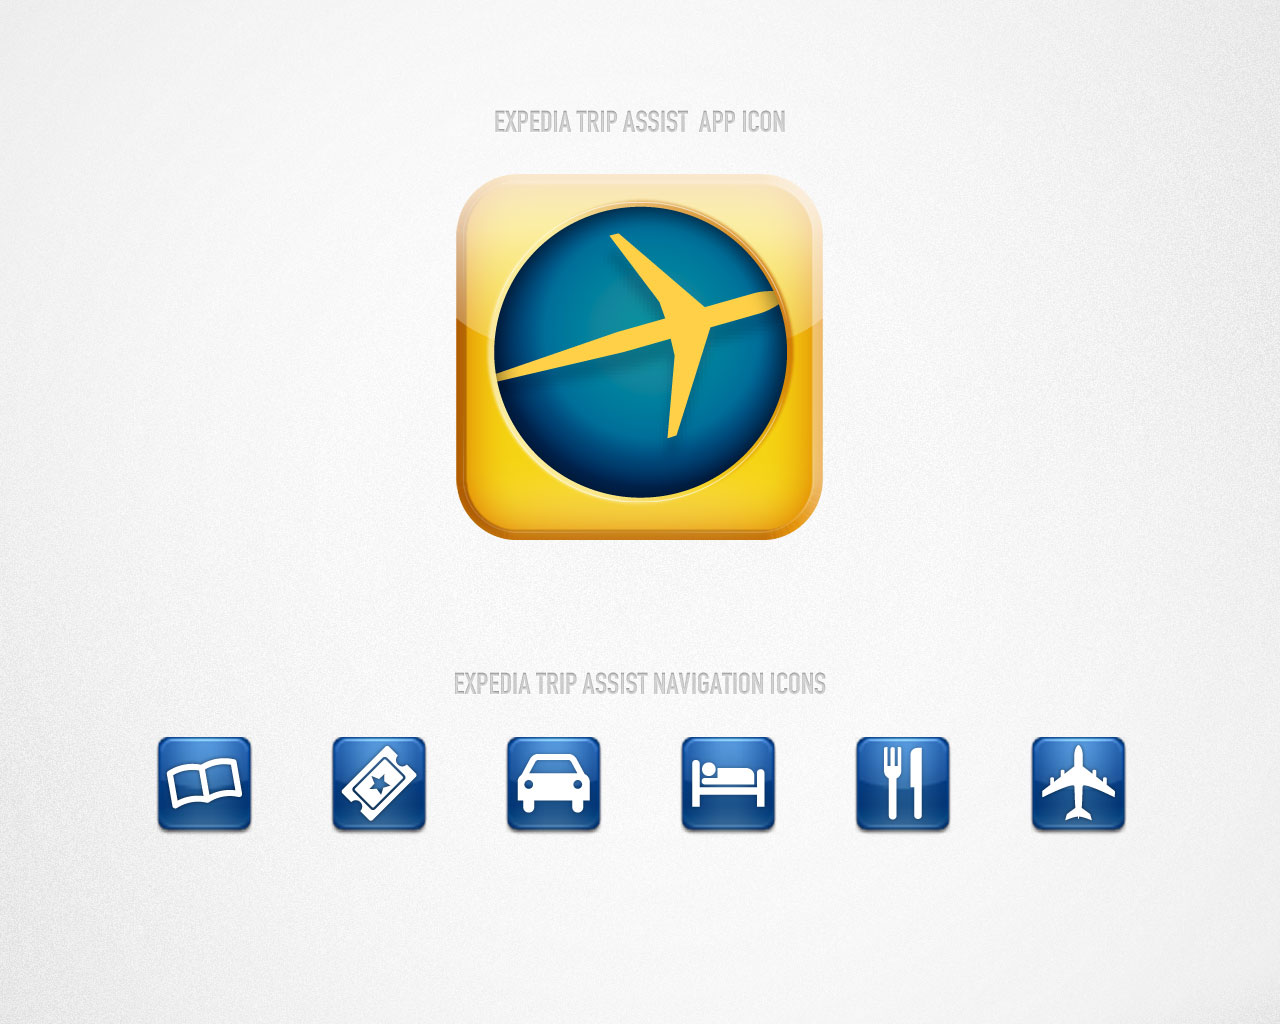 expedia_tripassist_icons